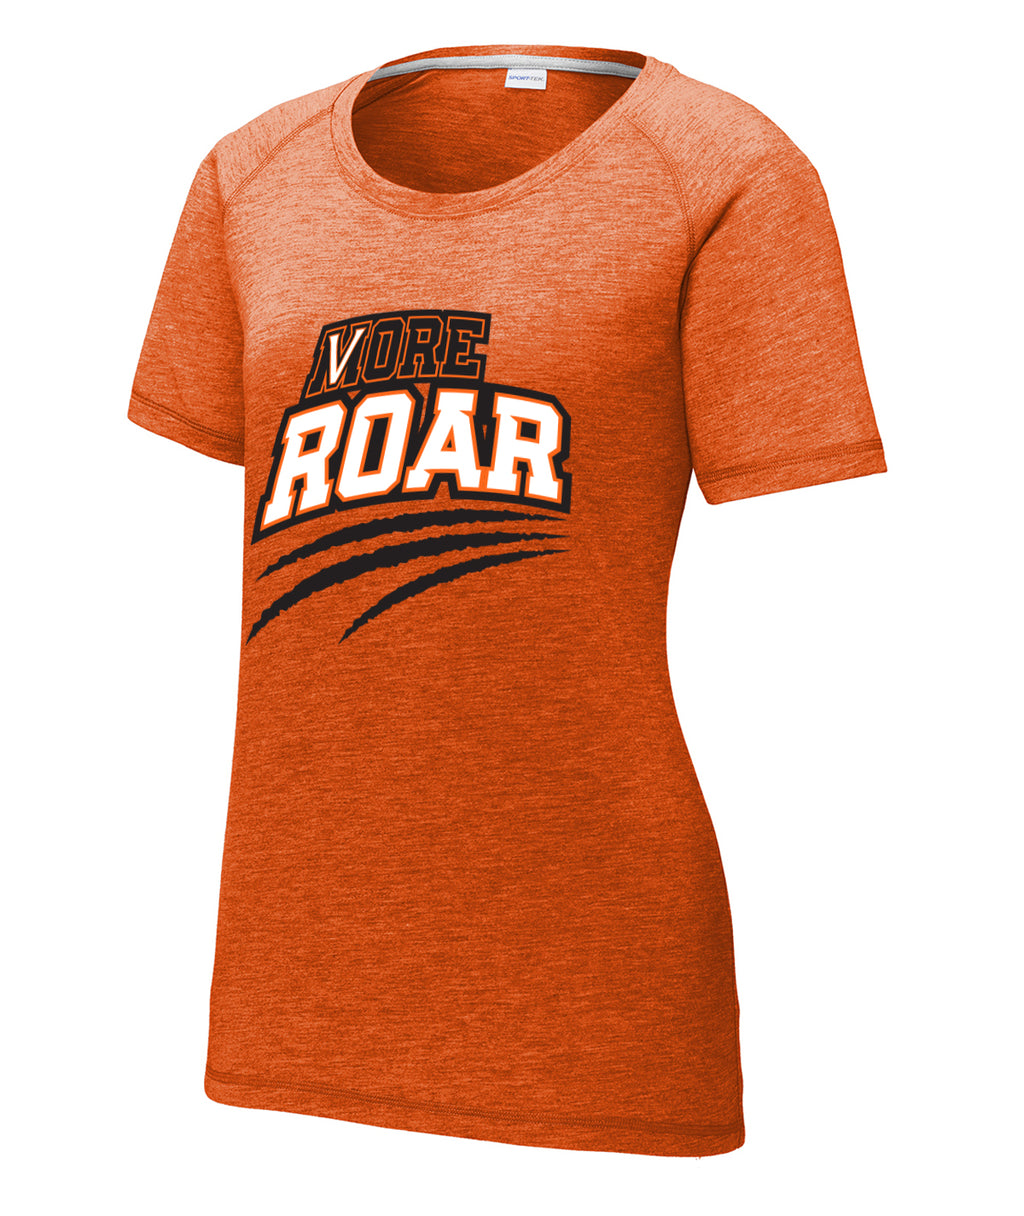 More Roar Womens Triblend Raglan Tee